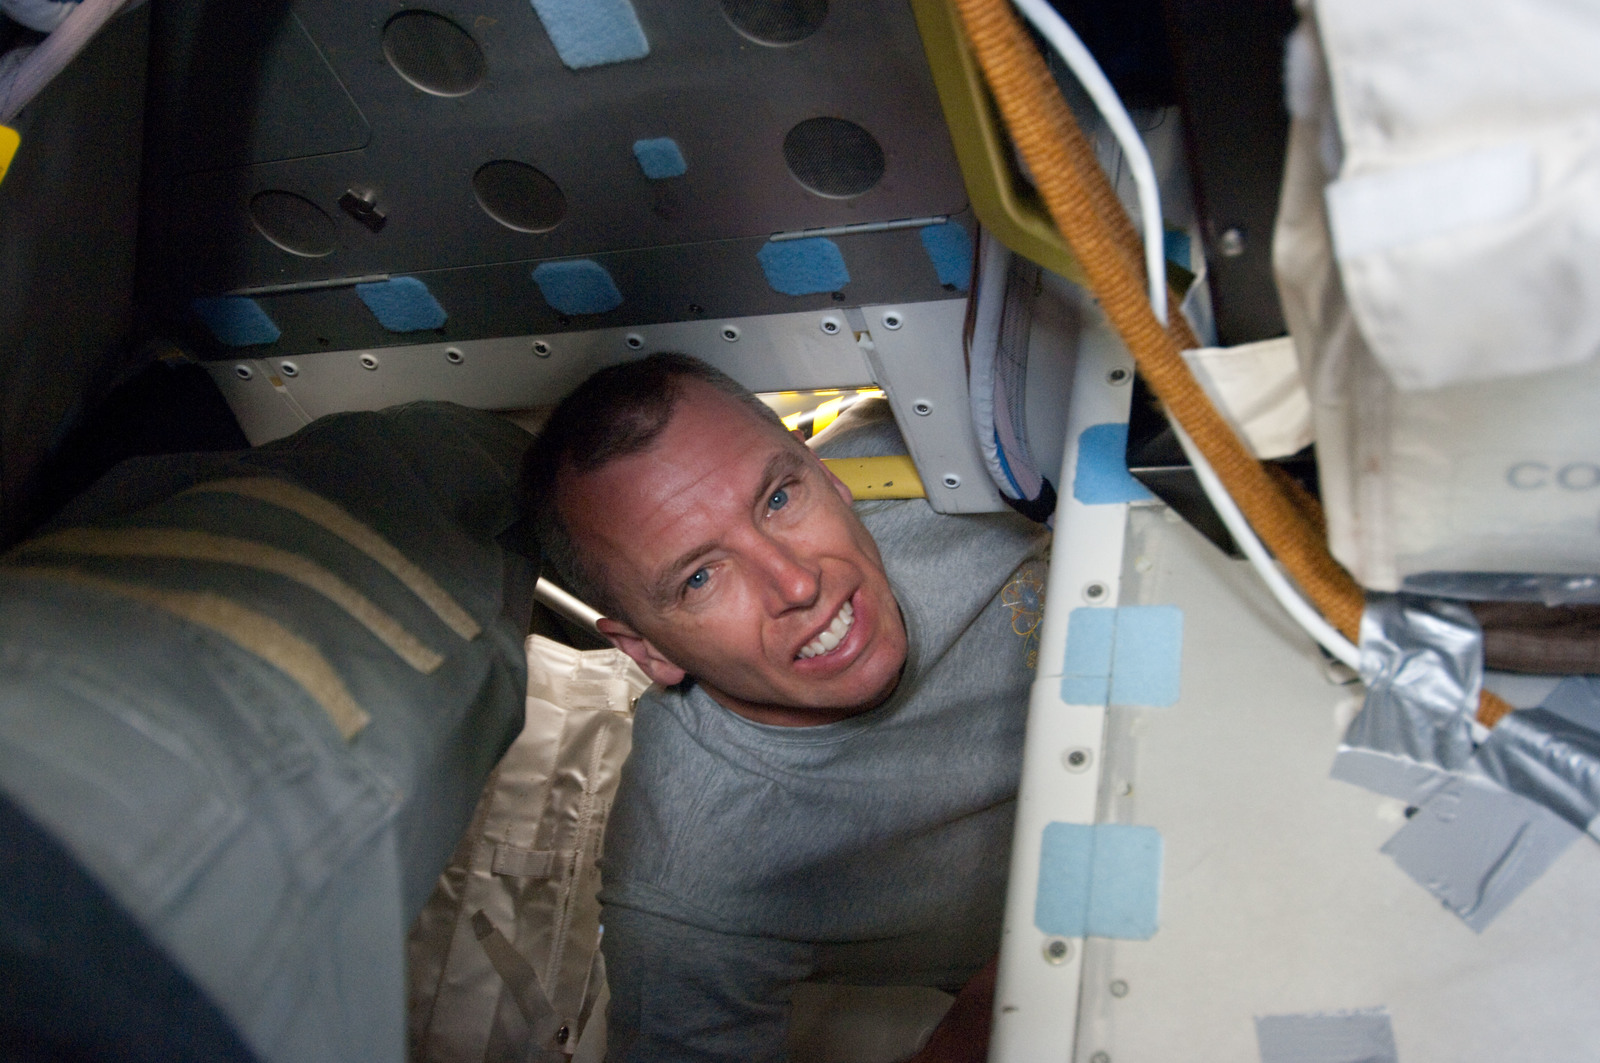 S134E005343 - STS-134 - View of STS-134 MS Feustel posing for a photo